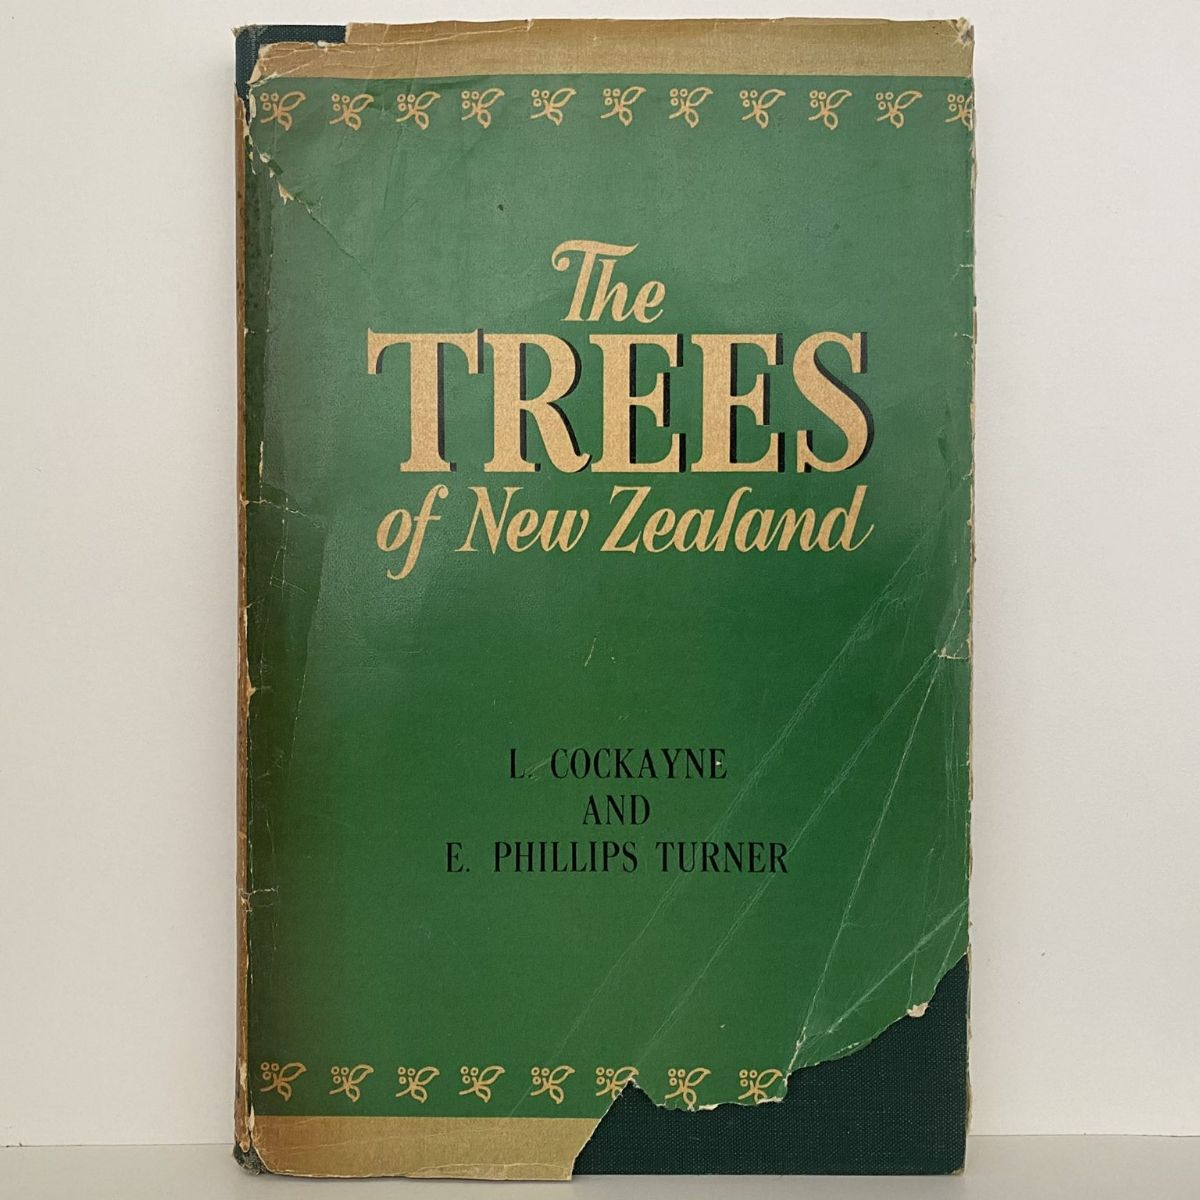 THE TREES of New Zealand